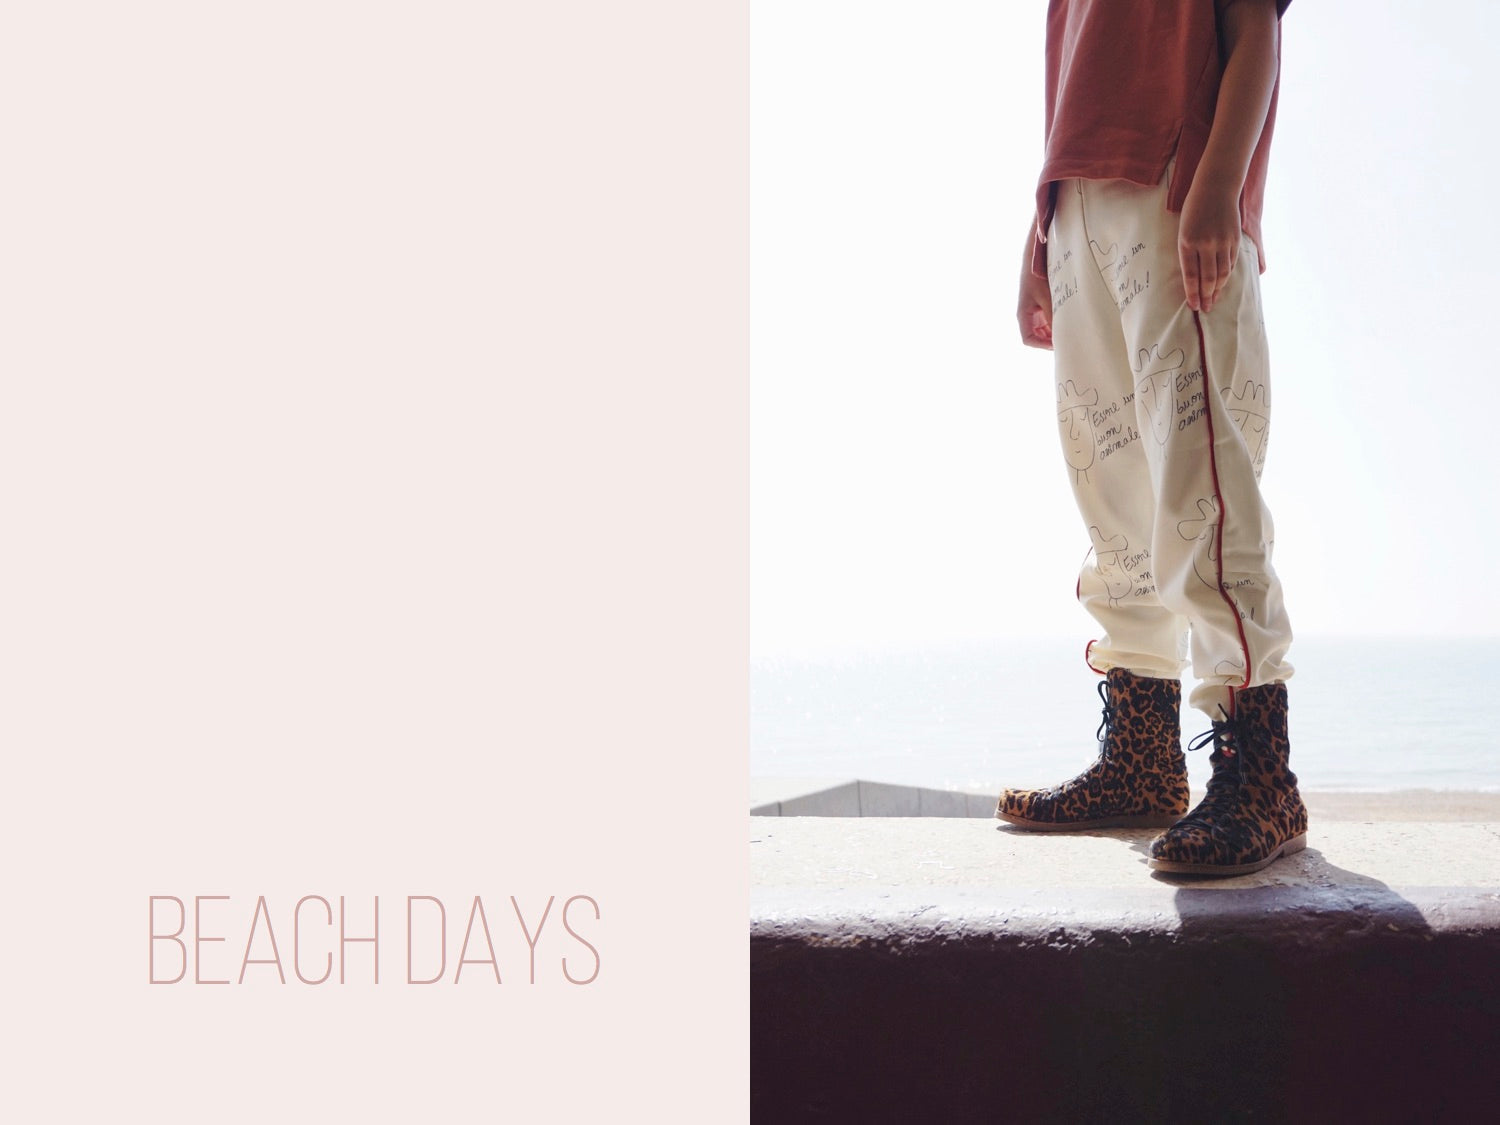 Beach days x CHAPTER 2